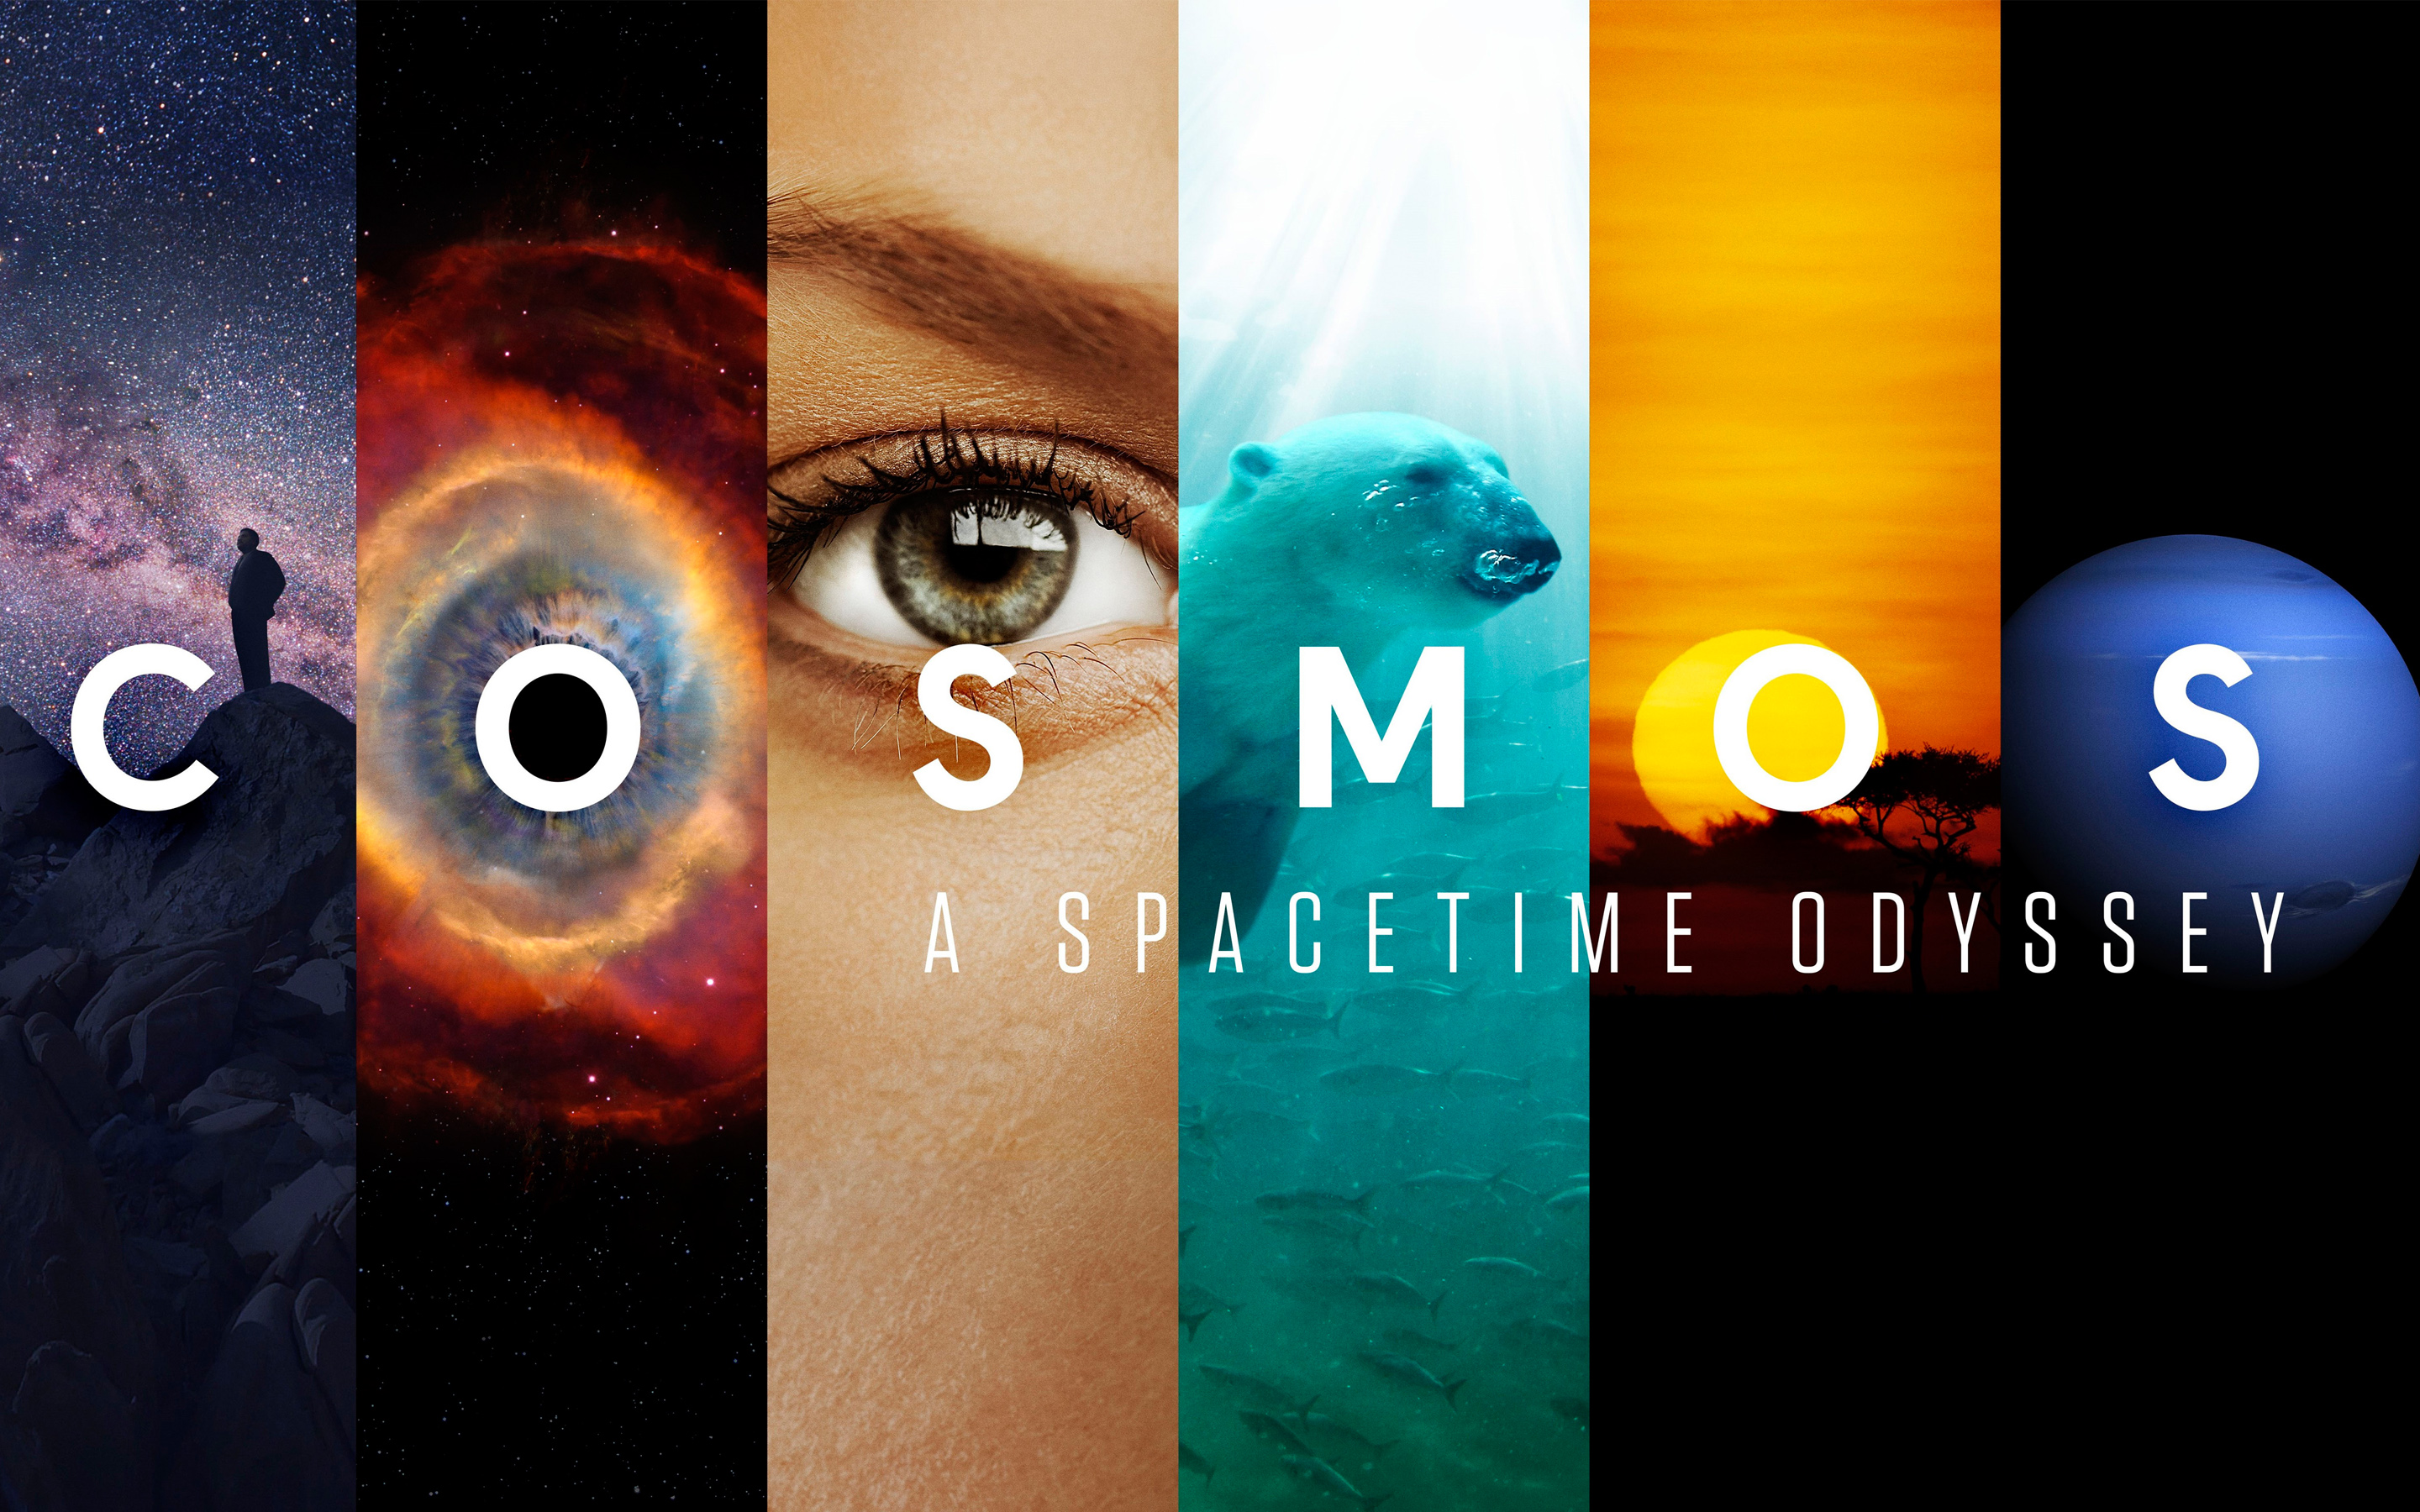 6 Cosmos A Spacetime Odyssey Hd Wallpapers Background Images